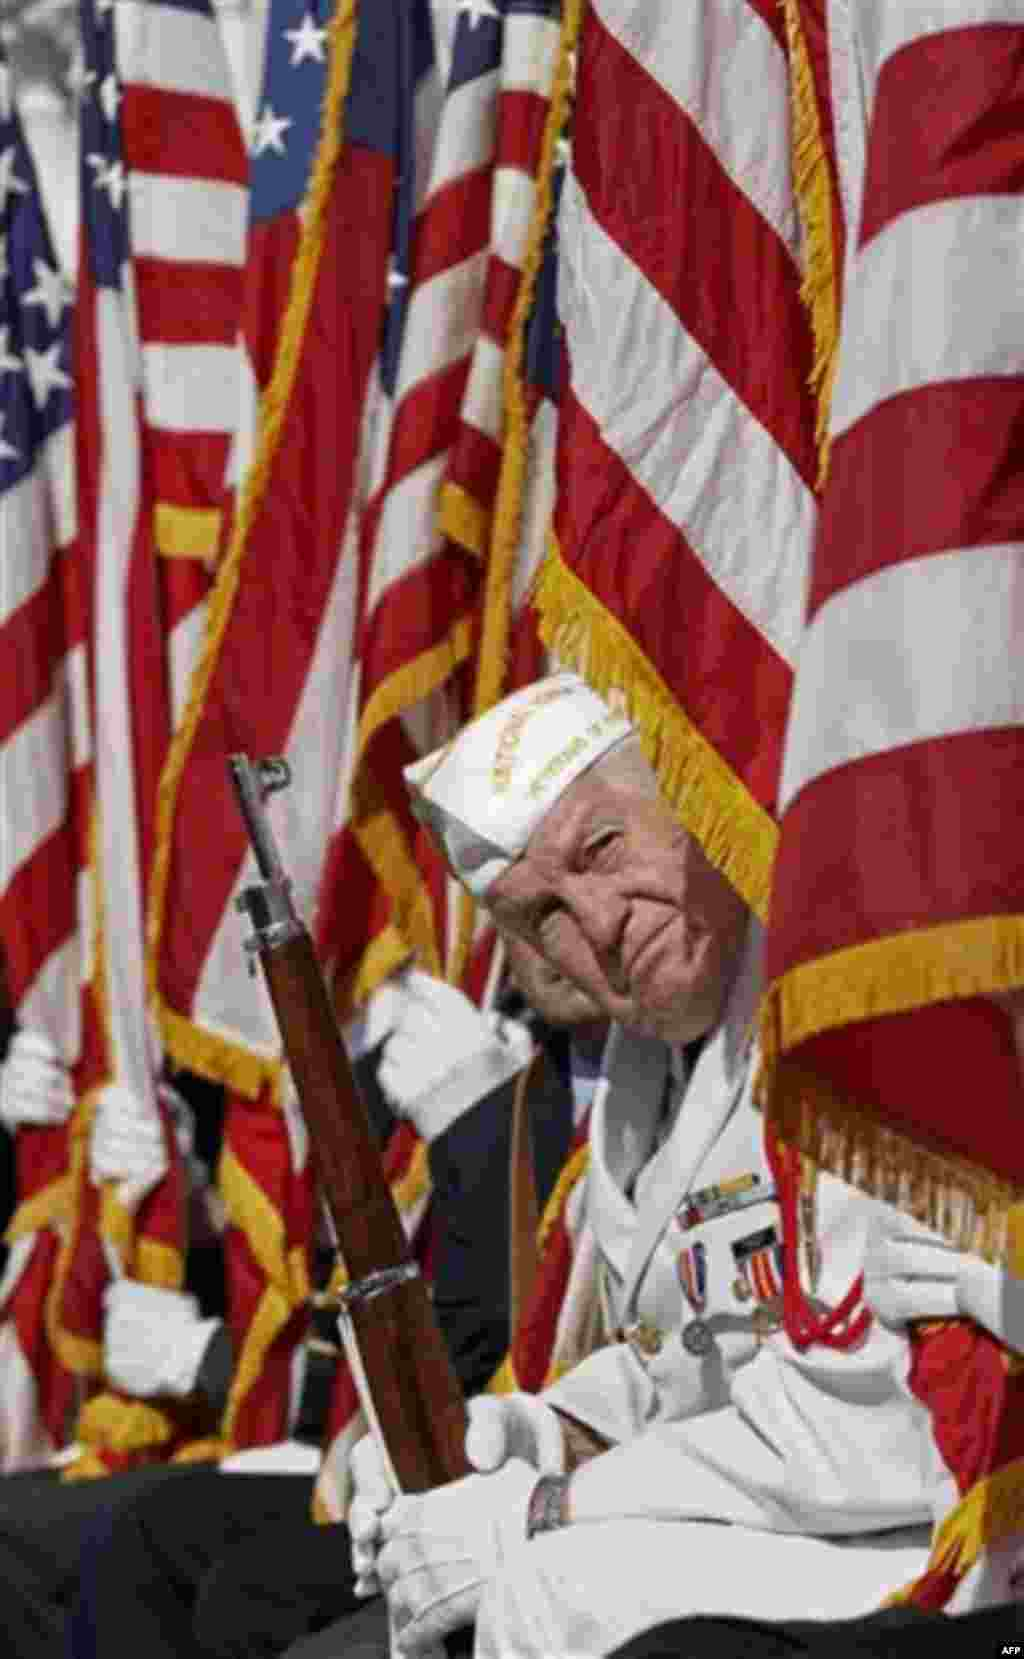 A member of the National Honor Guard looks out from behind an American flag to listen to President Barack Obama as he speaks during a Veteran�s Day ceremony at Arlington National Cemetery in Arlington, Va., Friday, Nov. 11, 2011. (AP Photo/Pablo Martinez